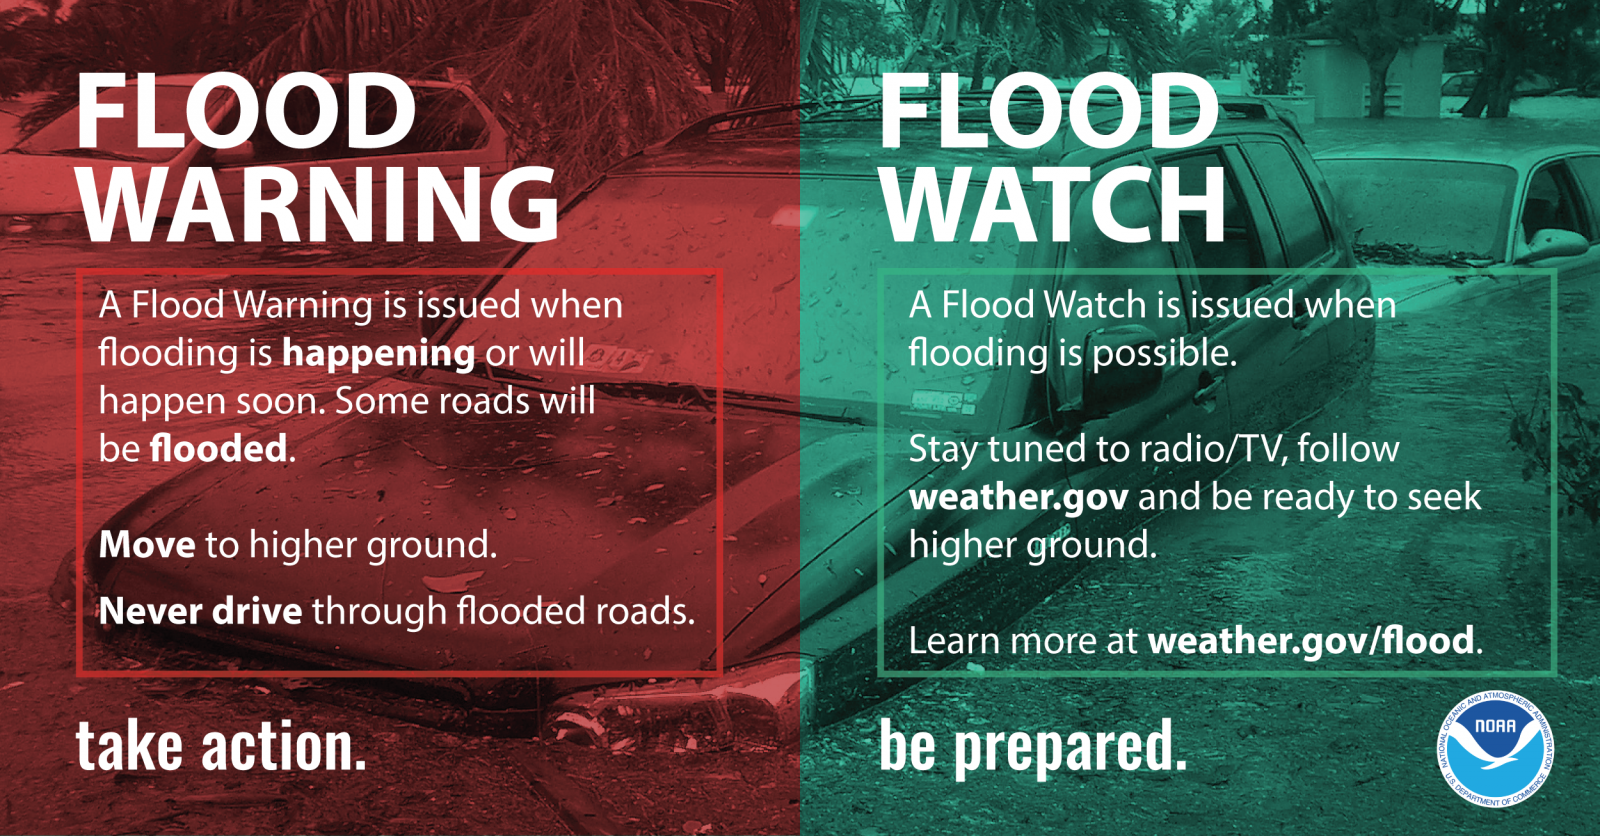 flood_watch_vs_warning-01_2017.png